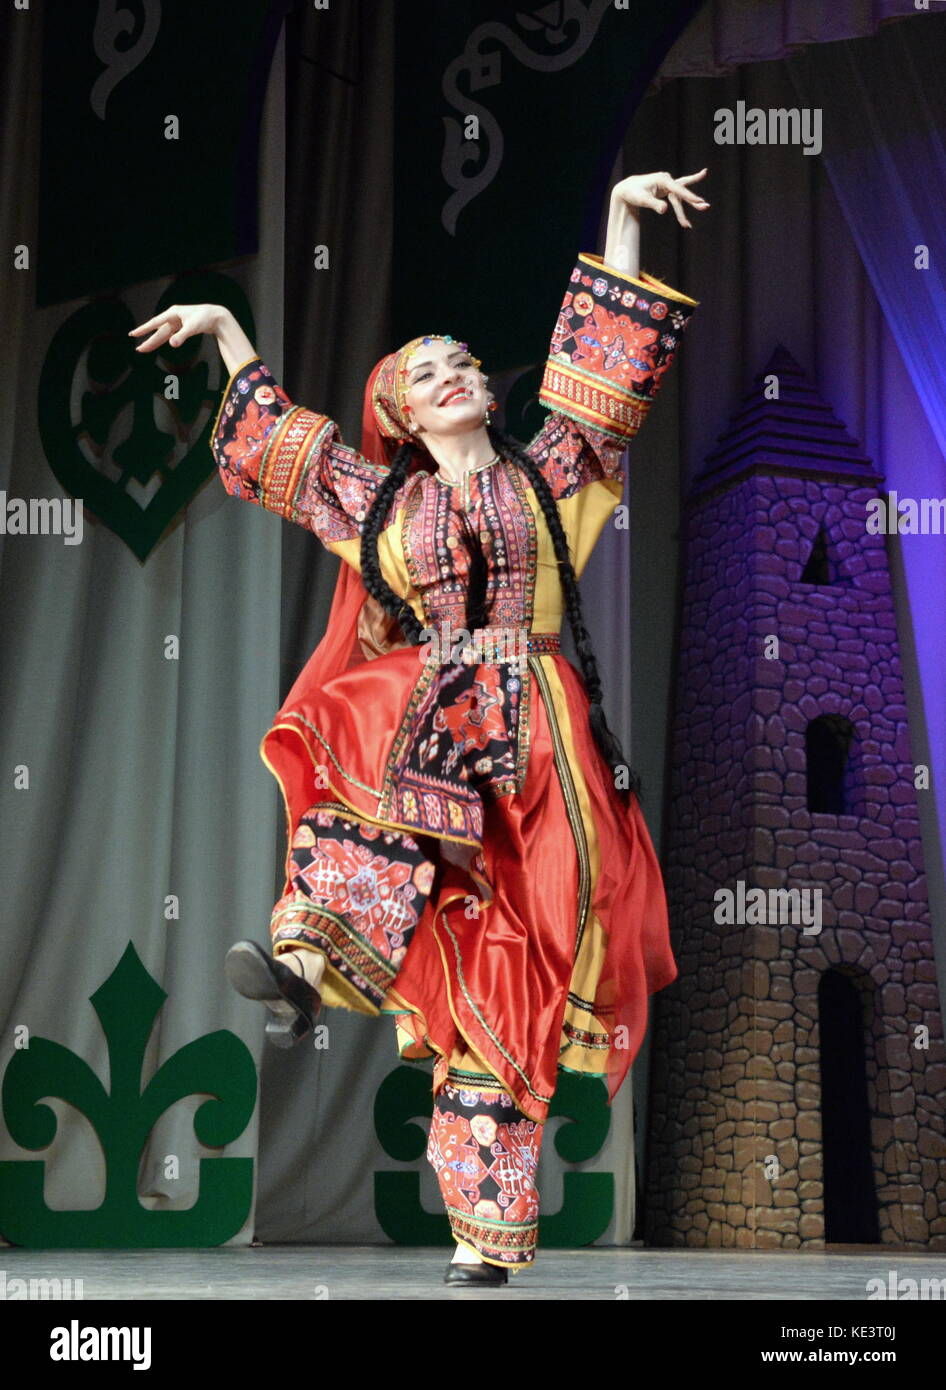 chechen dancer makhmud esambayev essay Essay on chechen dancer: makhmud esambayev - chechen dancer: makhmud esambayev a dance magician many believe music is a.